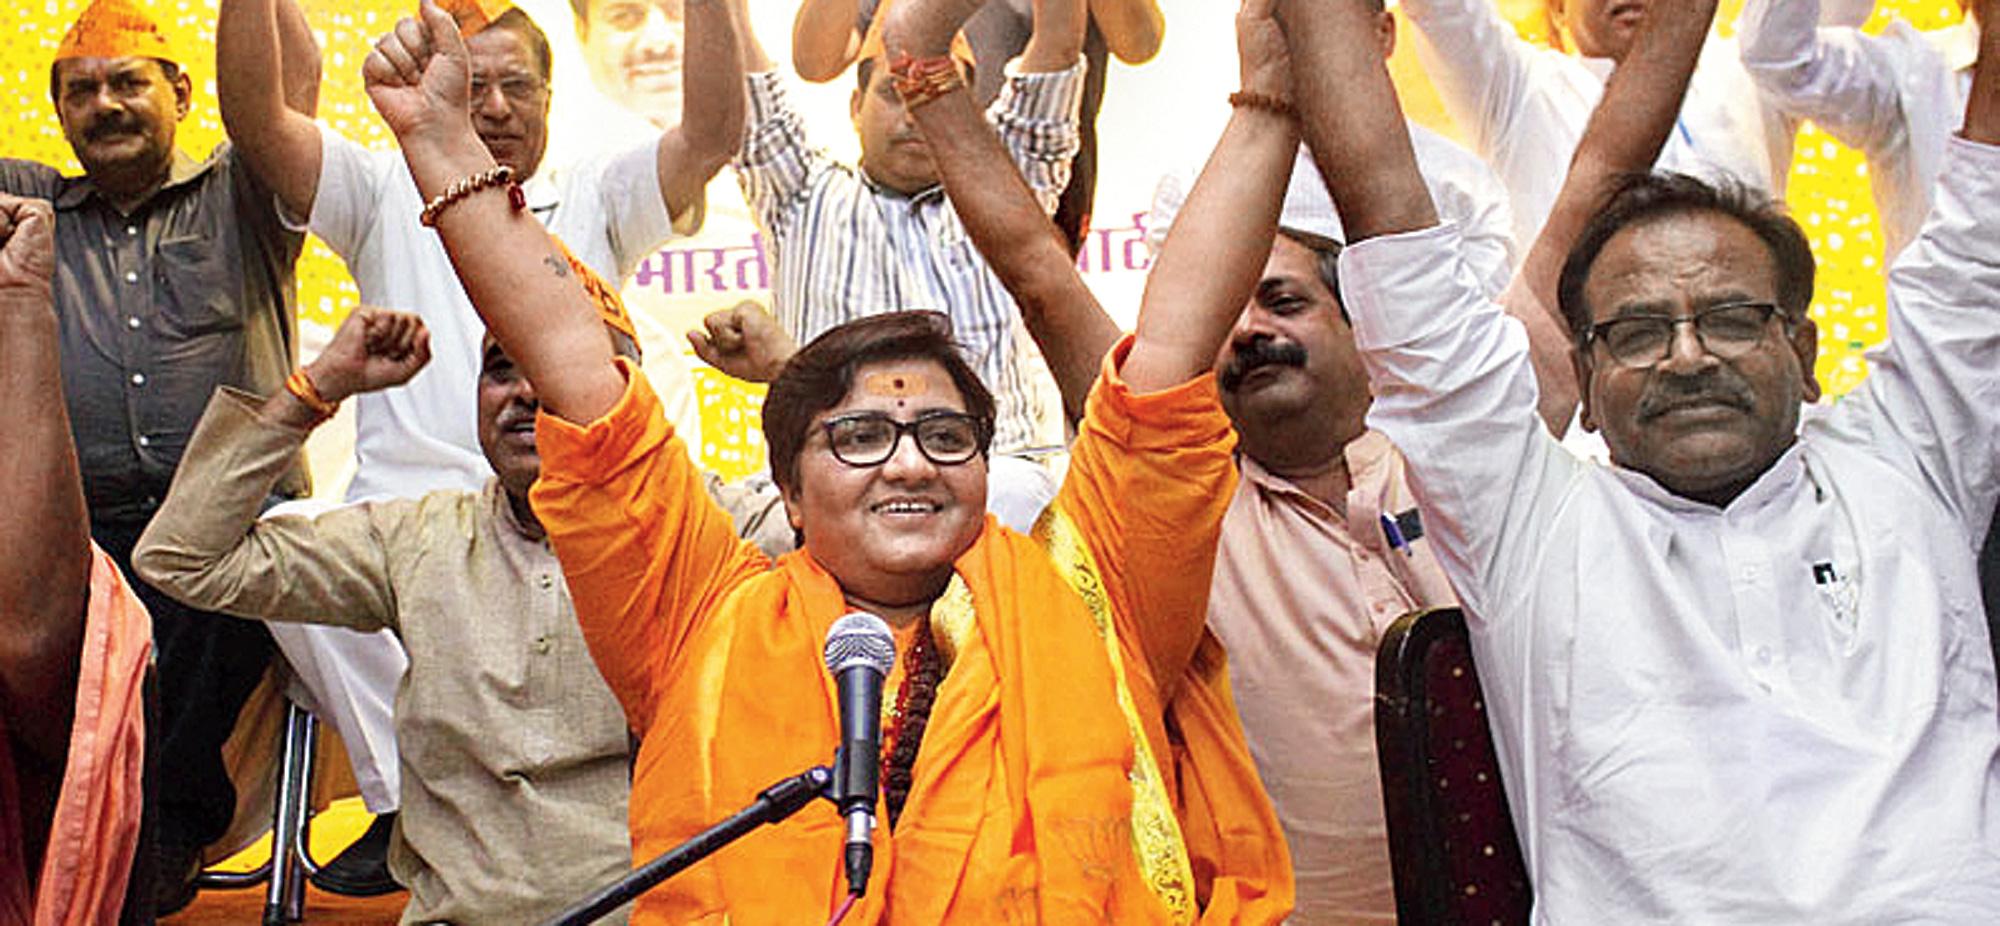 By choosing Pragya Singh Thakur, the Modi regime has bared its terrifying saffron fangs